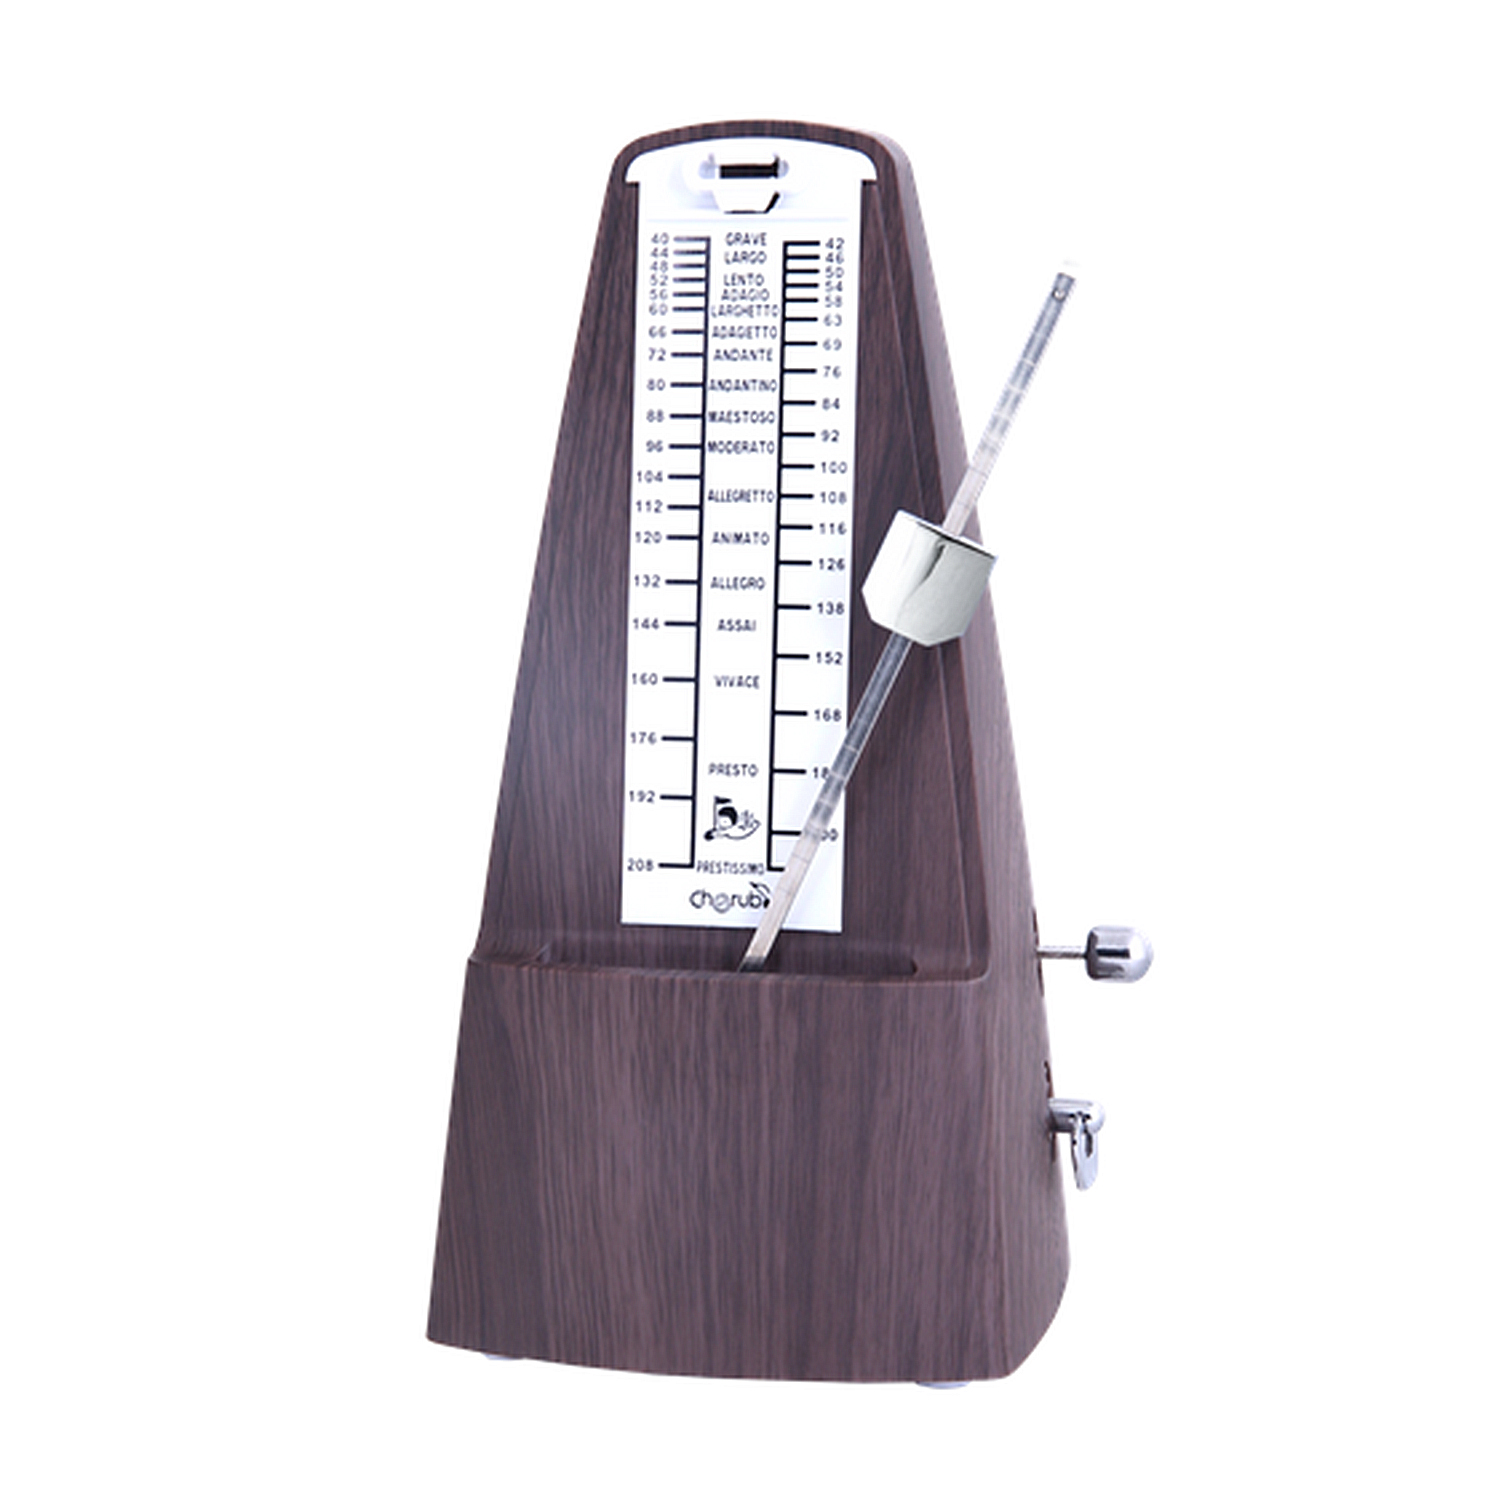 Cherub Walnut Wood Grain Mechanical Metronome 40 to 208 bpm Variable Tempo Traditional tower shape Downbeats  Spring Mechanism cherub wsm 330 rose wood cherry wood mechanical metronome musical instrument tempo beat rhythm